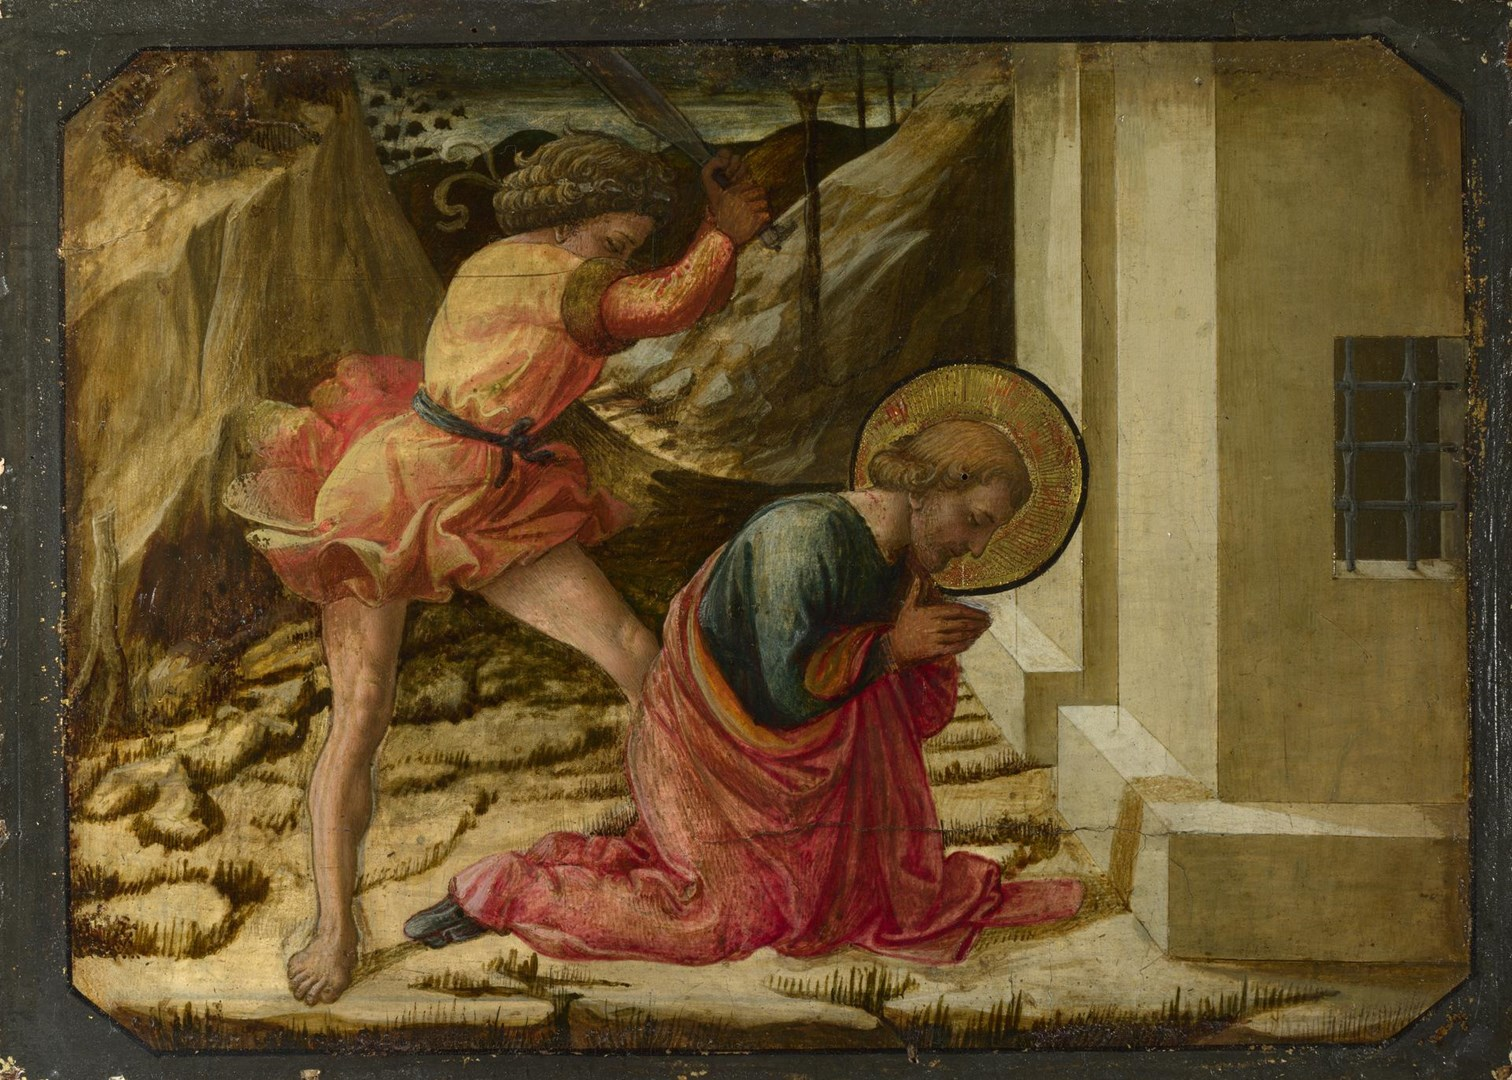 Beheading of Saint James the Great: Predella Panel by Fra Filippo Lippi and workshop